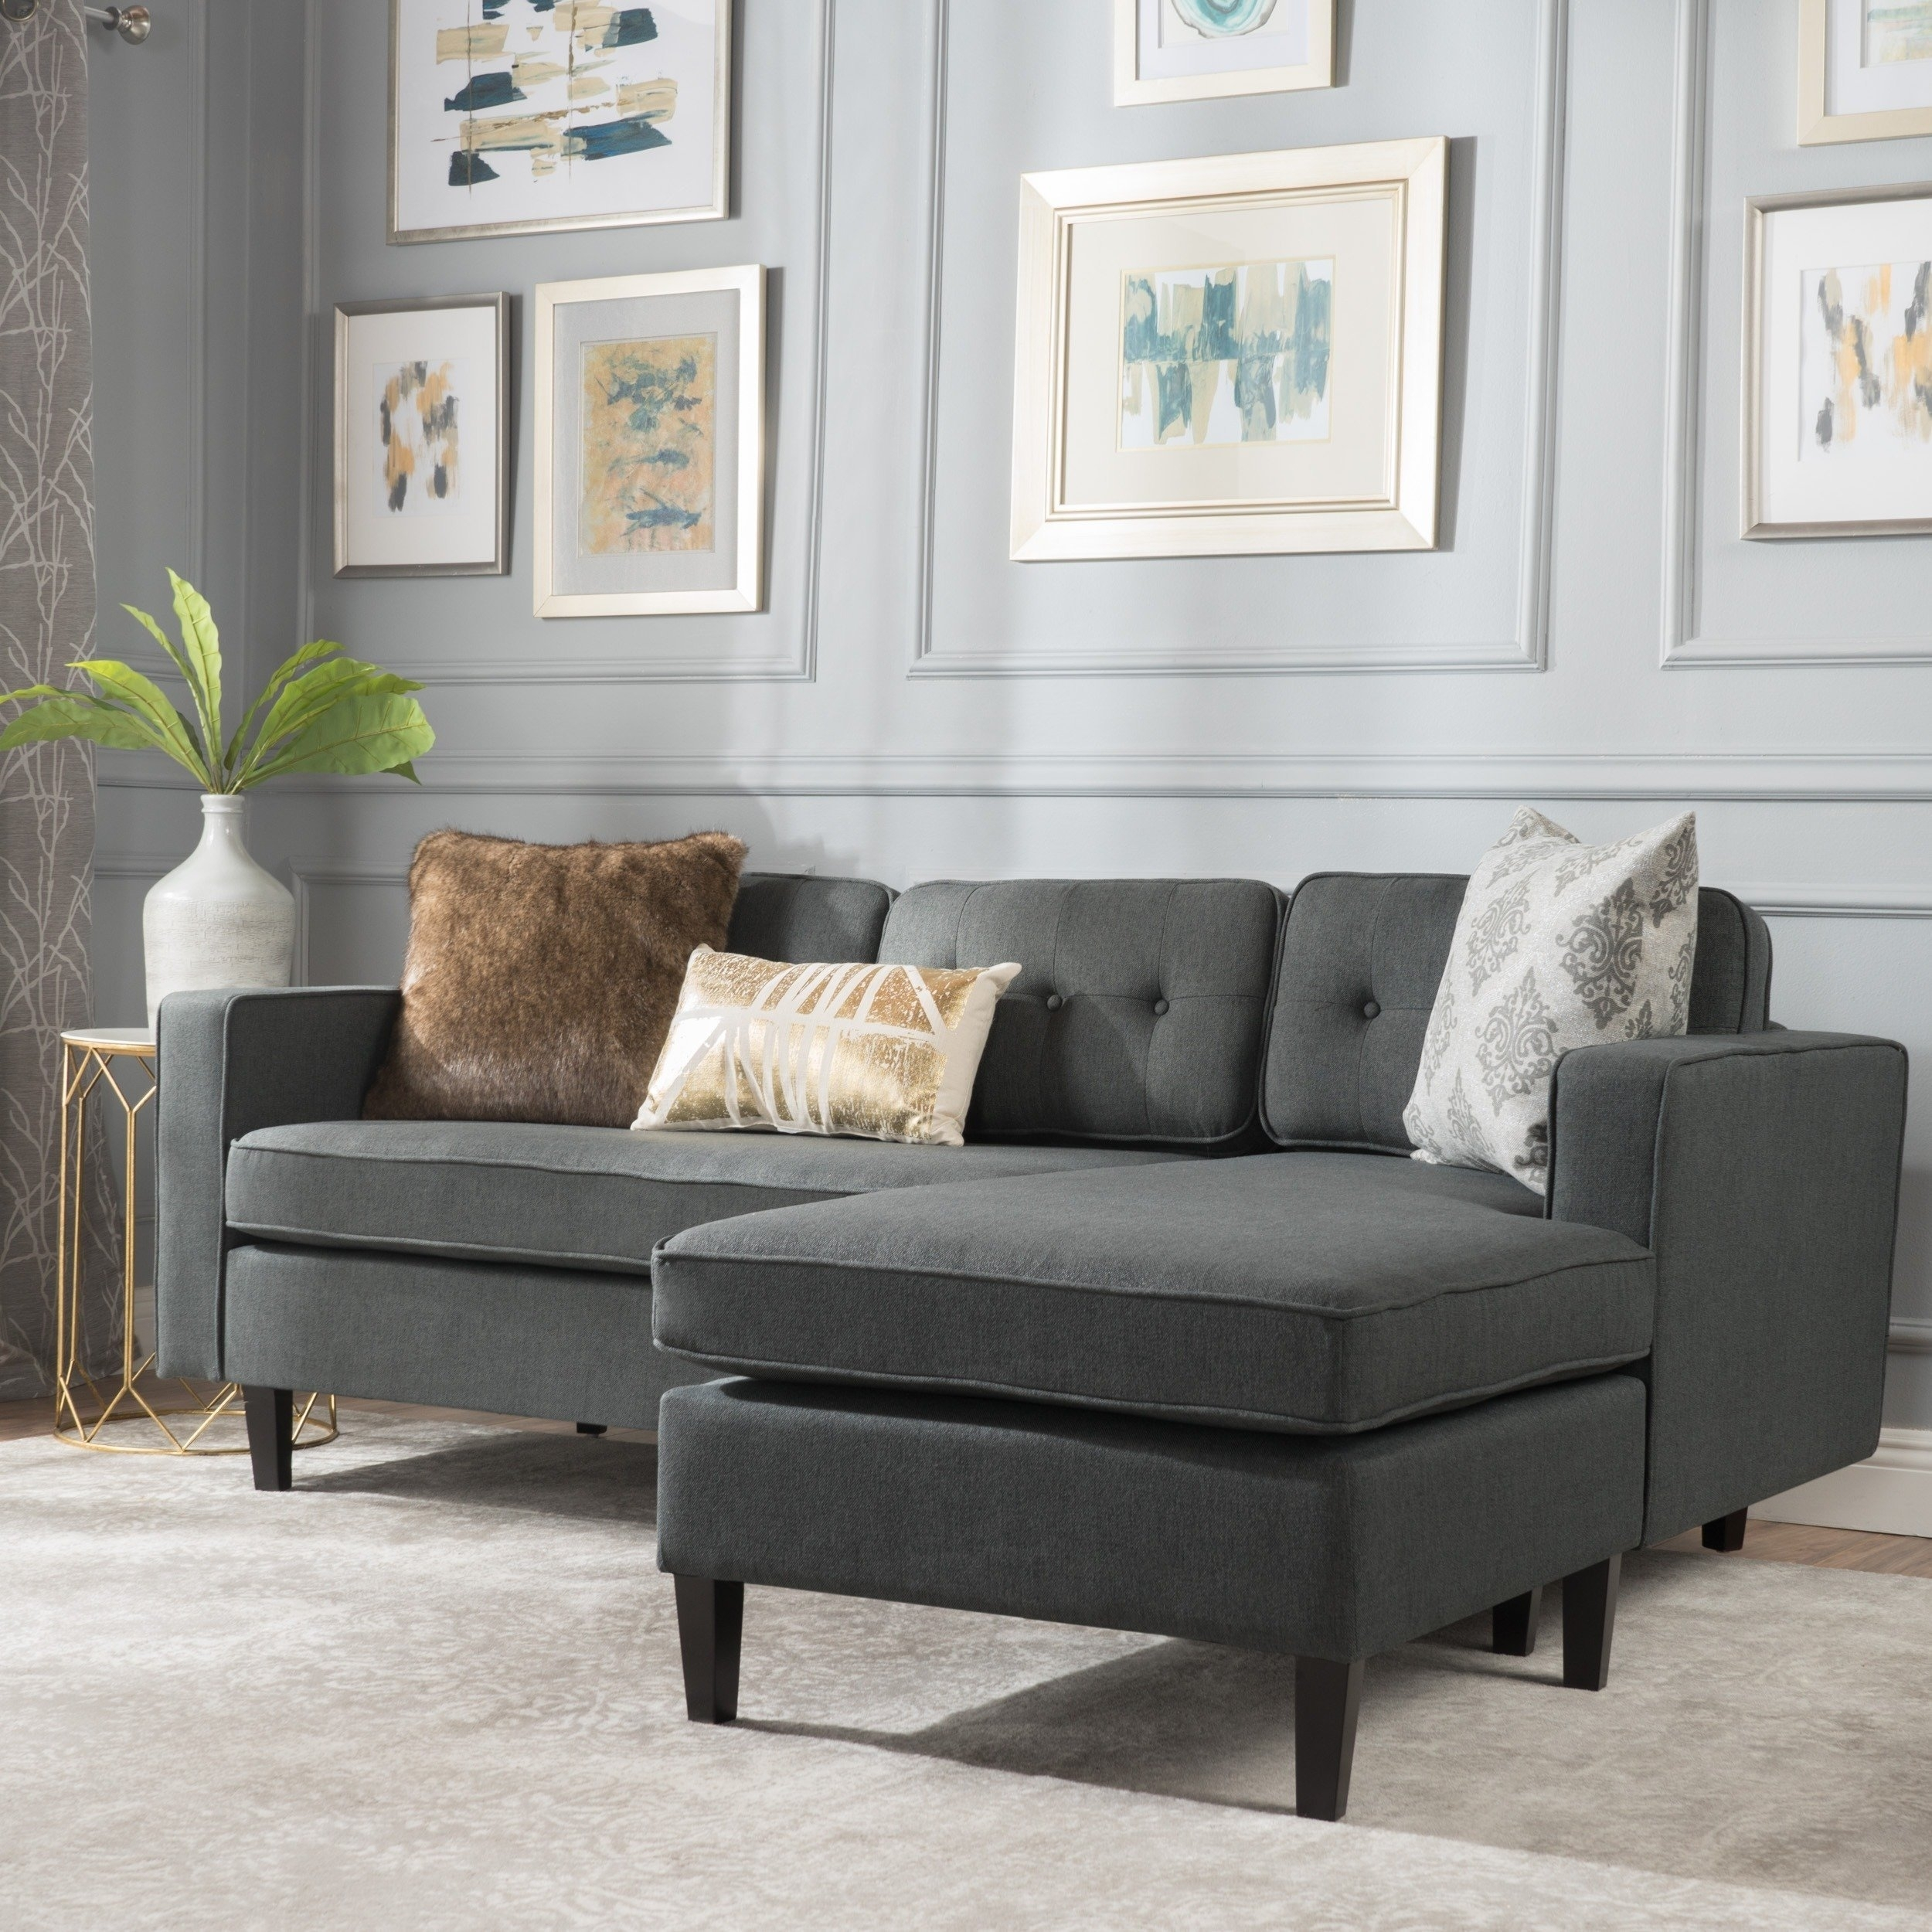 Sofa Chaise | Ladale Sofa Chaise Ashley Furniture Homestore Couches In Taren Reversible Sofa/chaise Sleeper Sectionals With Storage Ottoman (View 19 of 25)